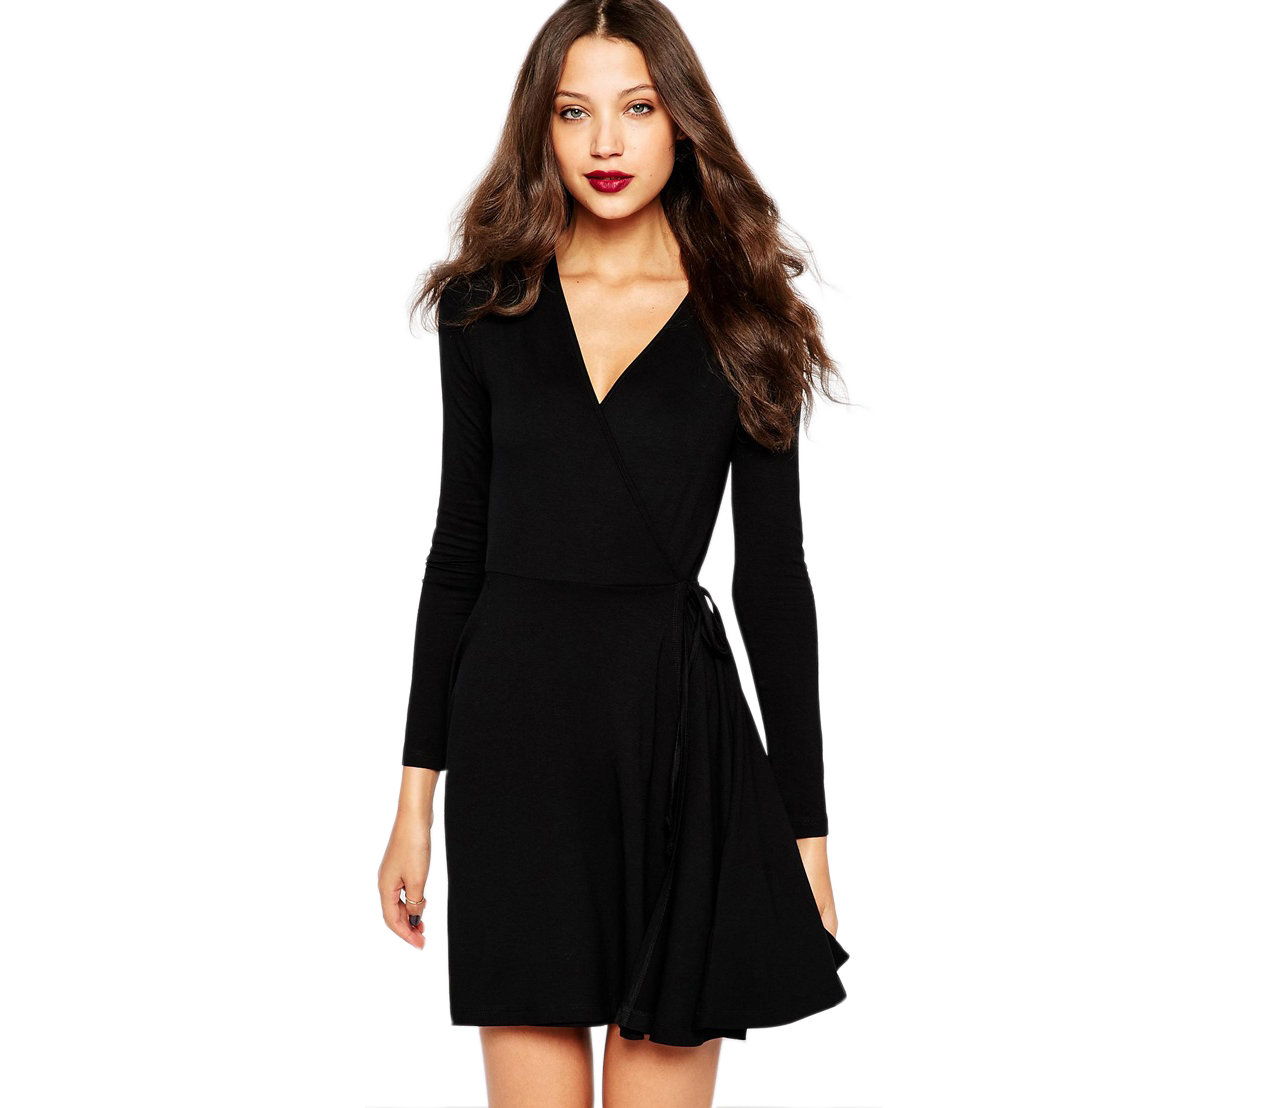 LBD's for Every Body Type